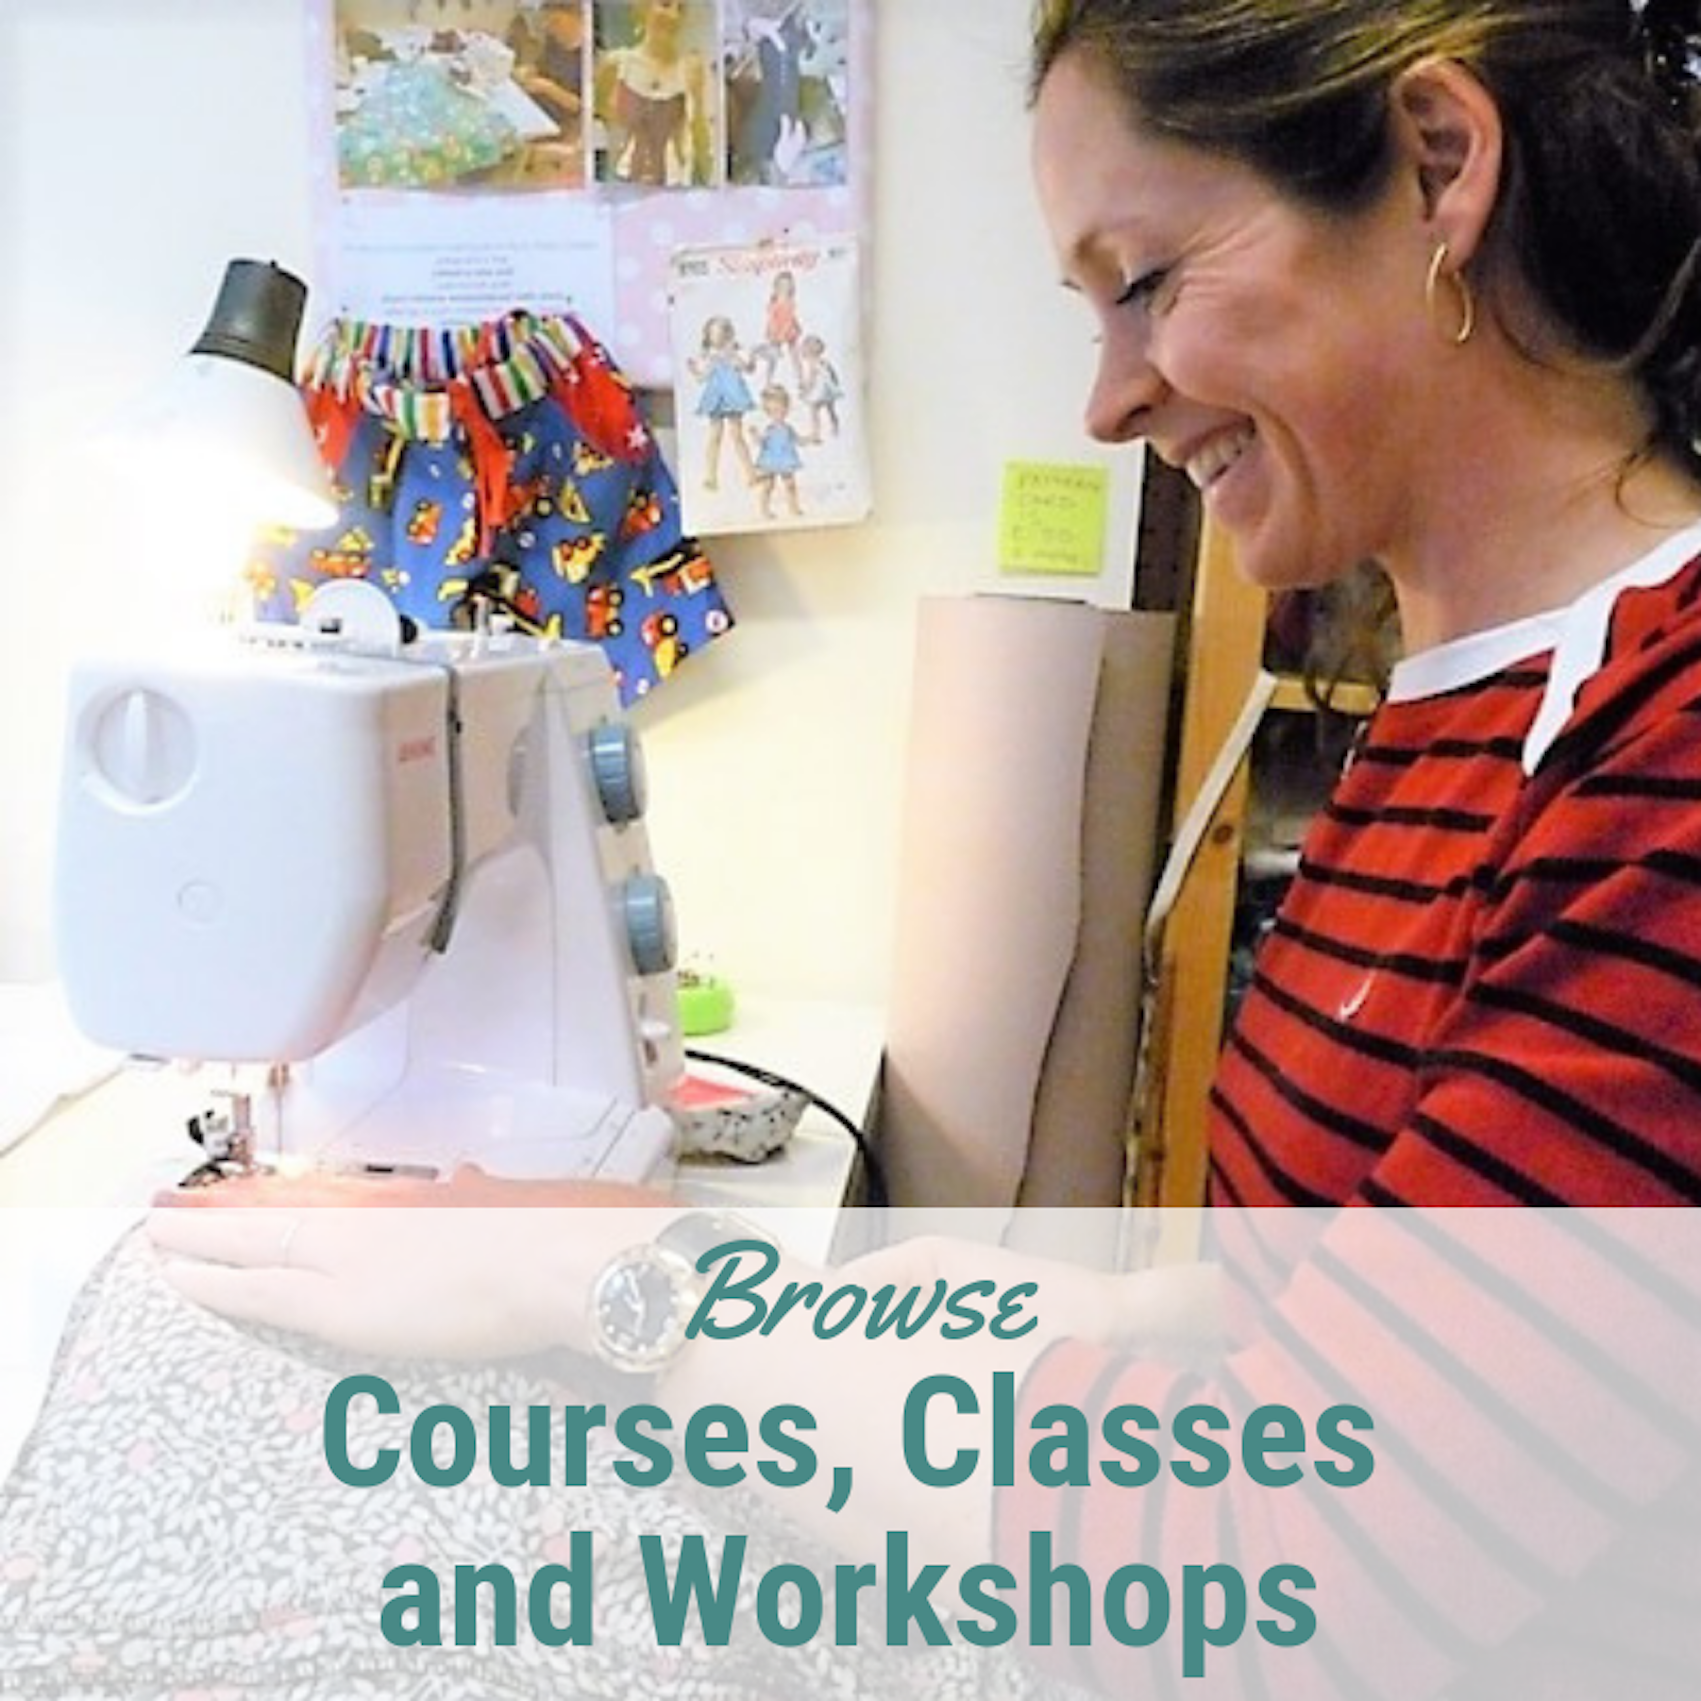 Browse sewing Classes, Courses & Workshops in Brighton & Hove